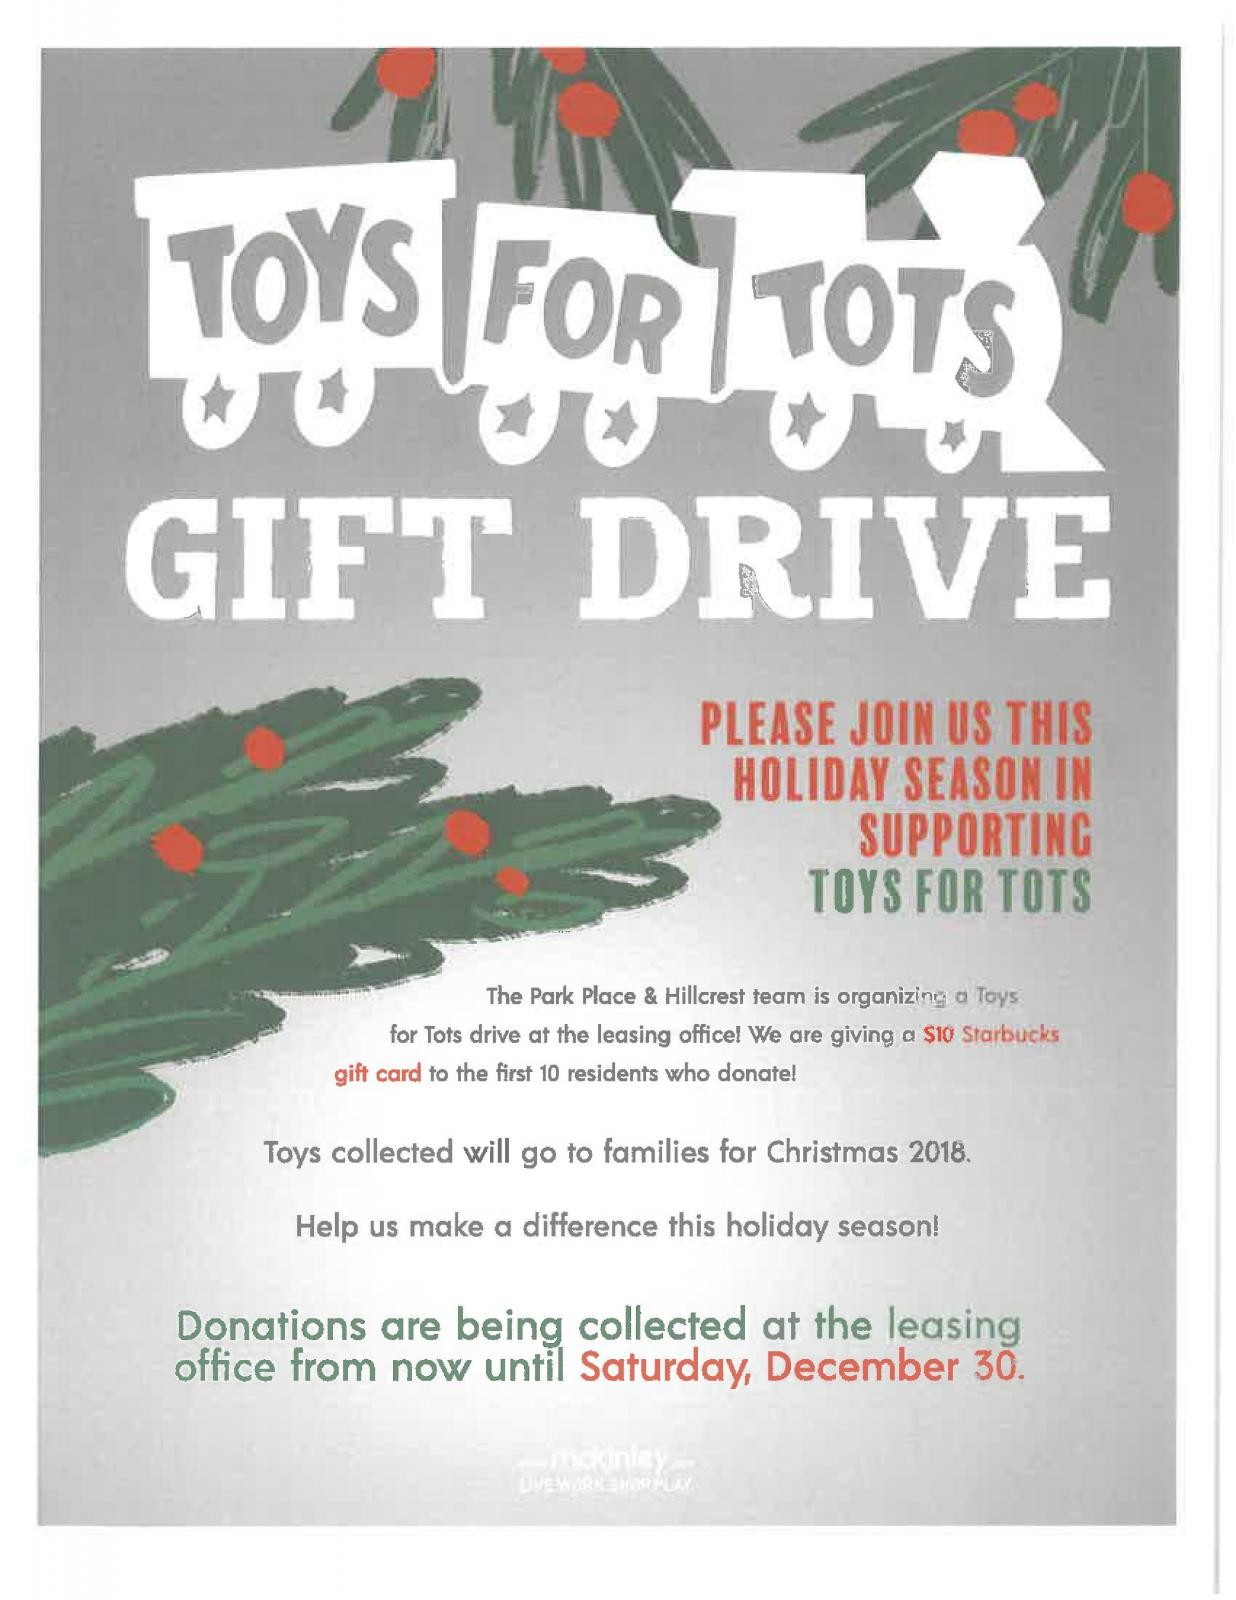 Tis The Season! Toys for Tots Collection! | My.McKinley.com - Your ...